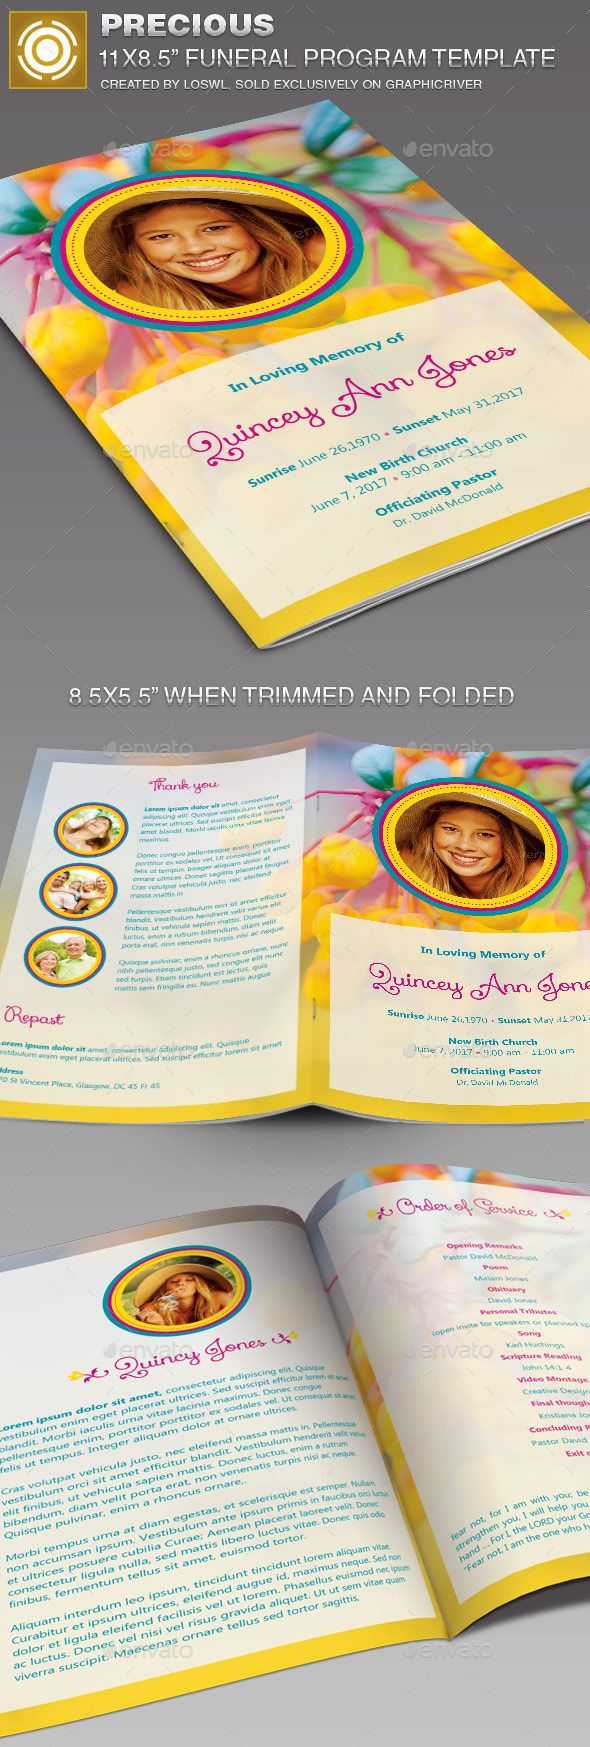 Fine 100 Chart Template Huge 101 Modern Resume Samples Clean 15 Year Old First Job Resume 1930s Newspaper Template Old 2 Circle Label Template Pink2007 Powerpoint Templates 215 Best Images About Funeral IDEAS On Pinterest | Program ..